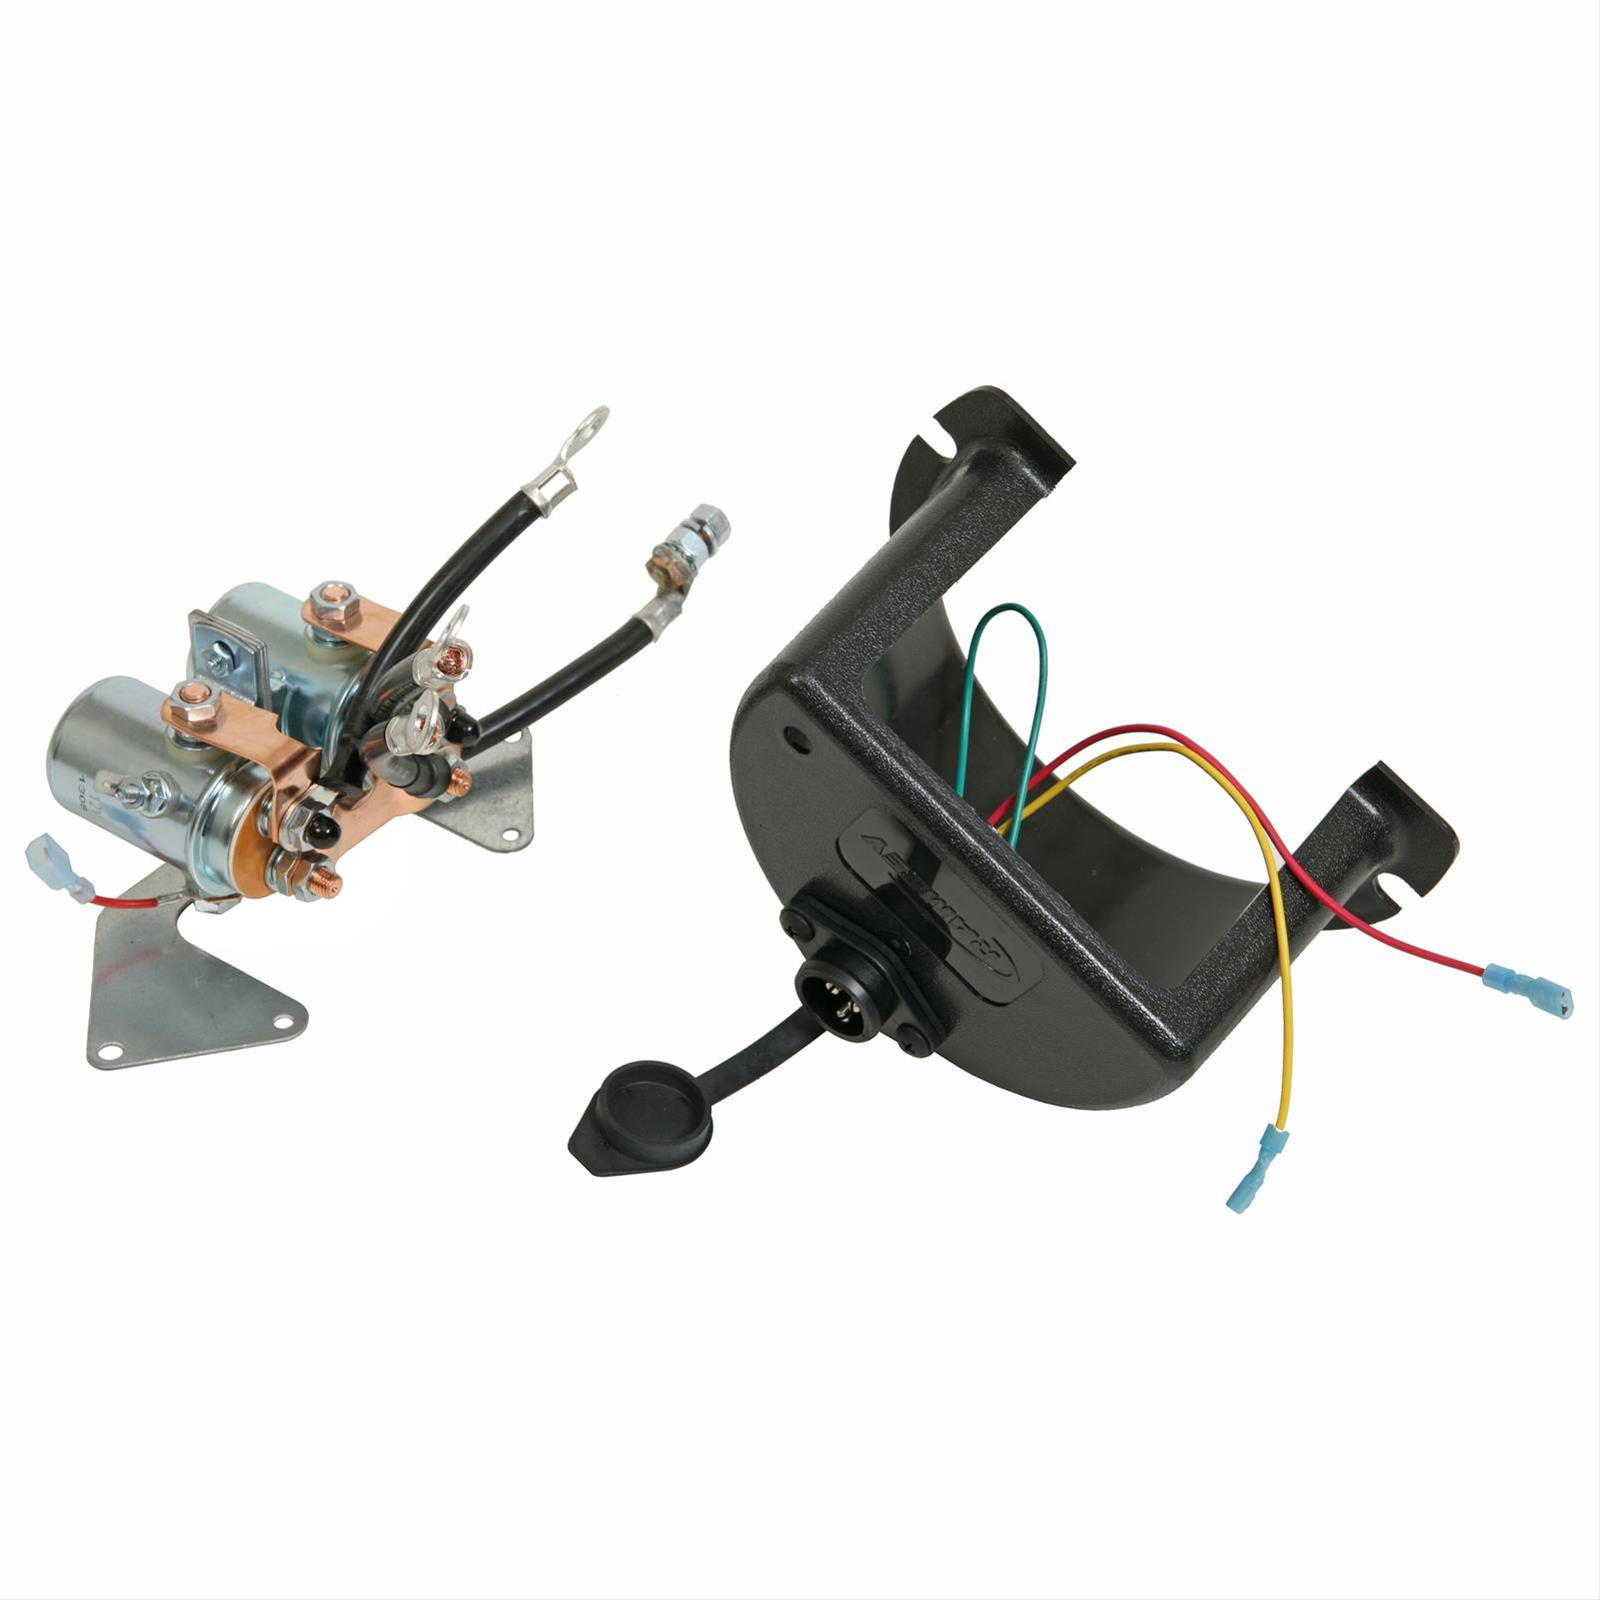 ramsey replacement winch solenoids 278170 free shipping on orders rh summitracing com ramsey 8000 lb winch wiring diagram Winch Solenoid Wiring Diagram